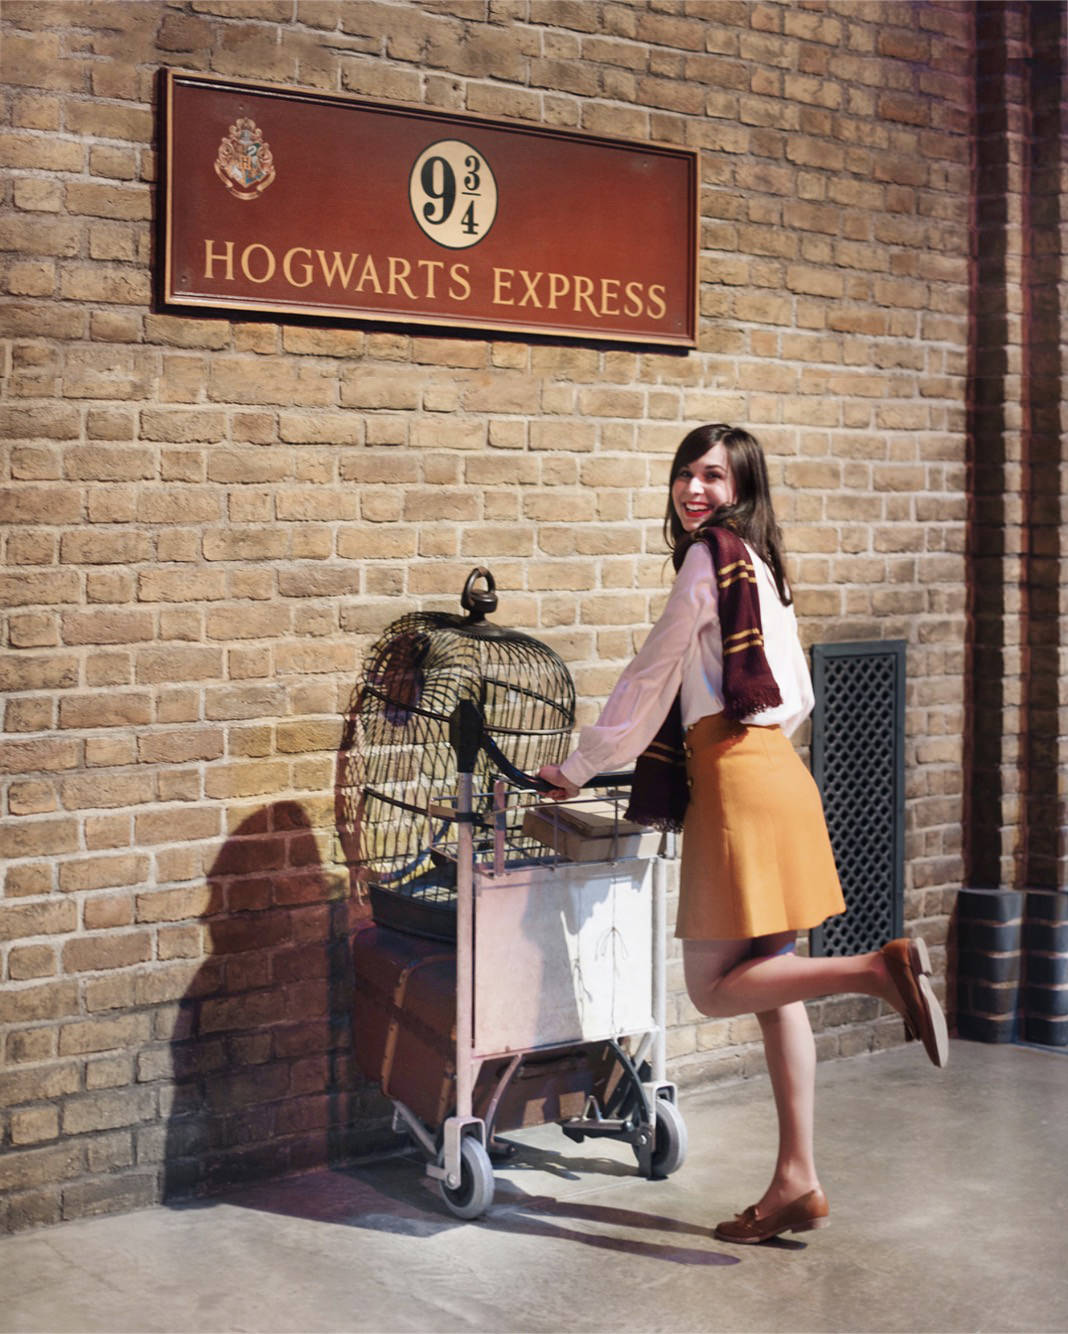 Blog-Mode-And-The-City-Lifestyle-Visite-Studios-Harry-Potter-Londres-33